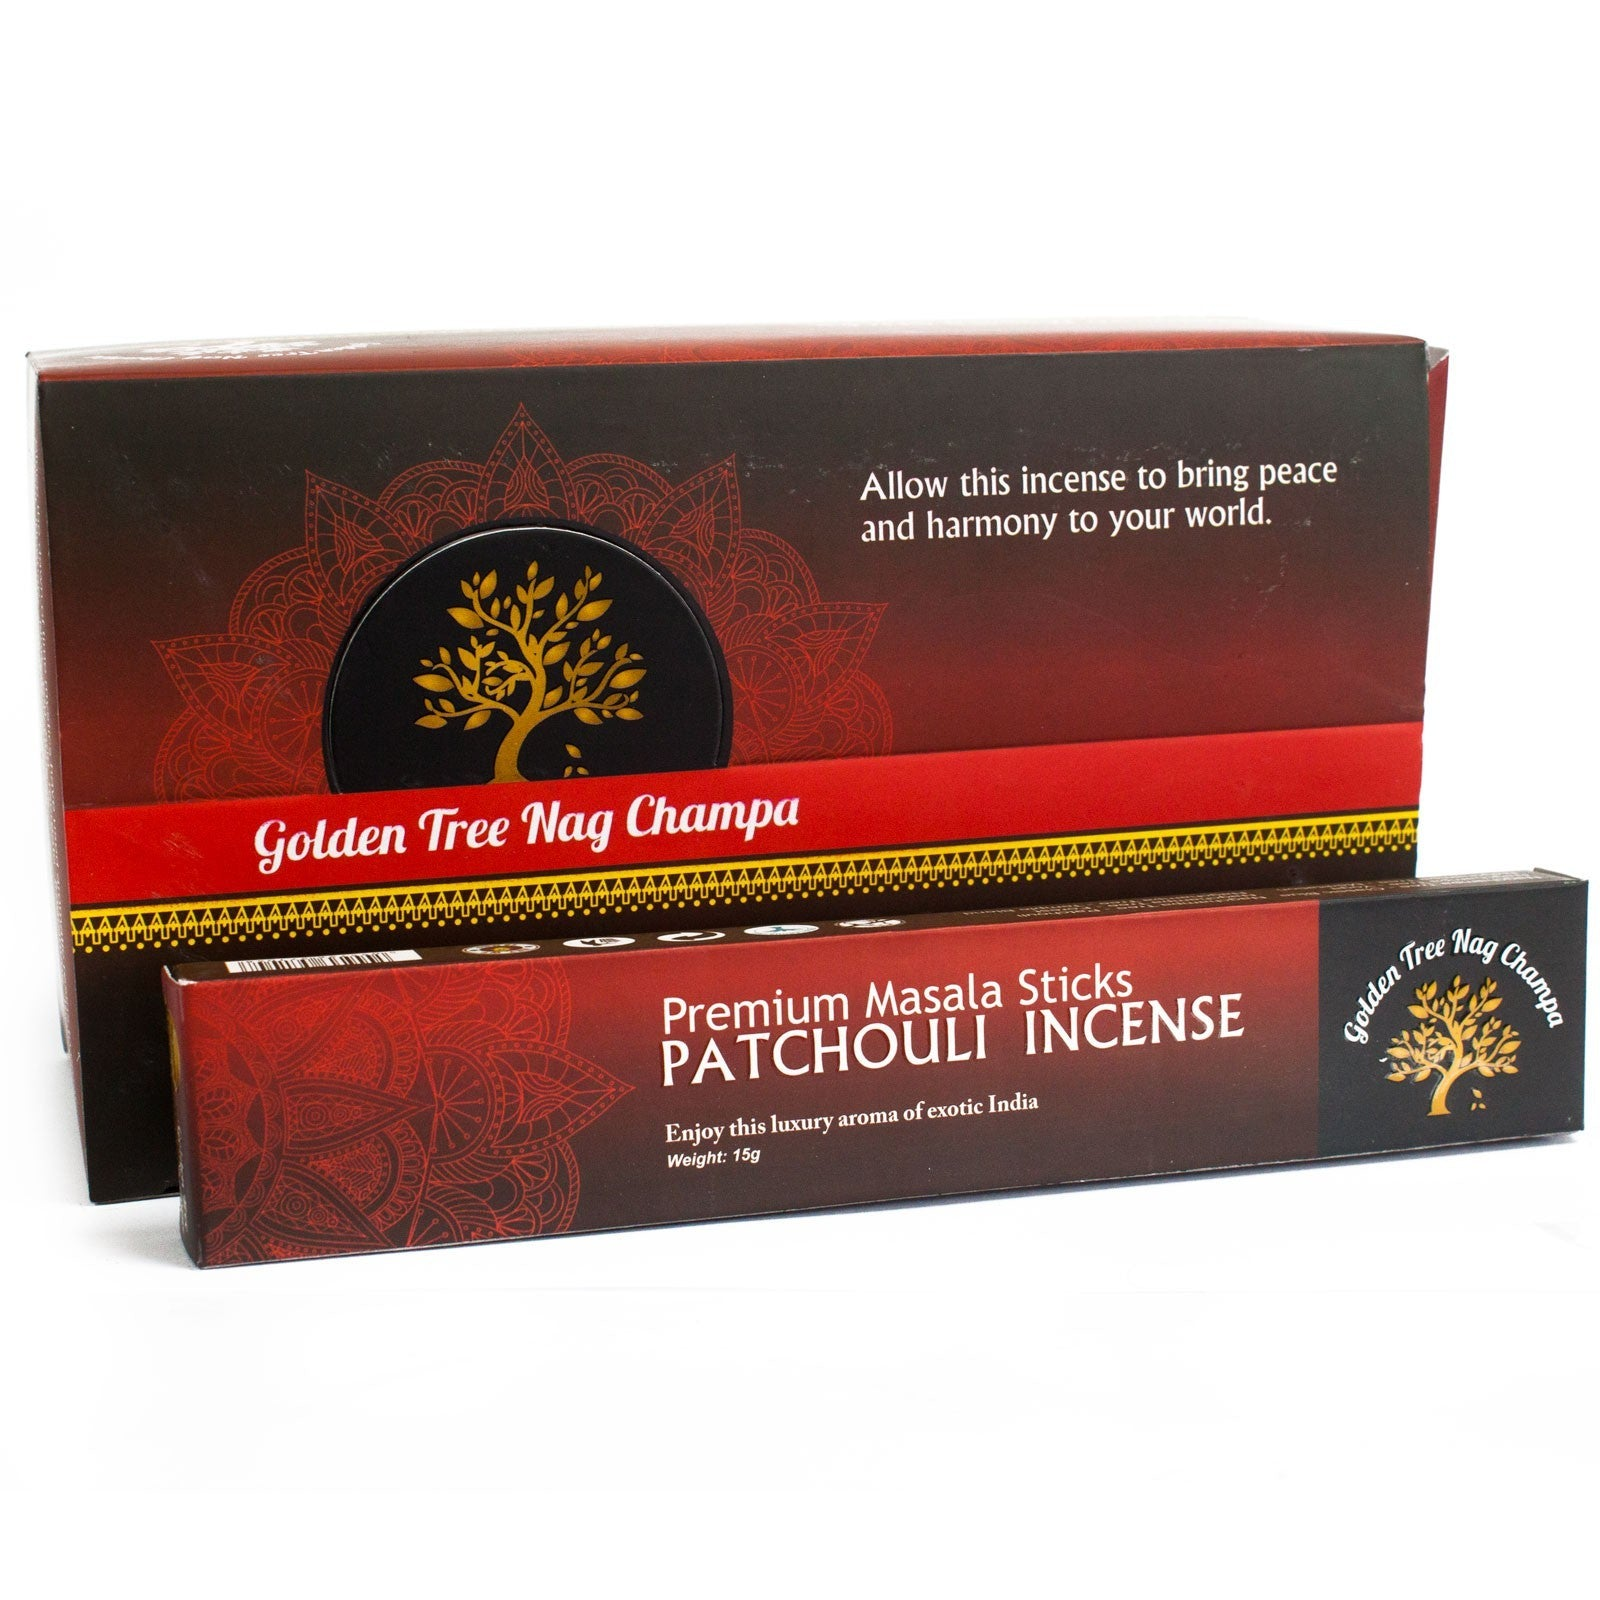 Golden Tree Nag Champa Incense